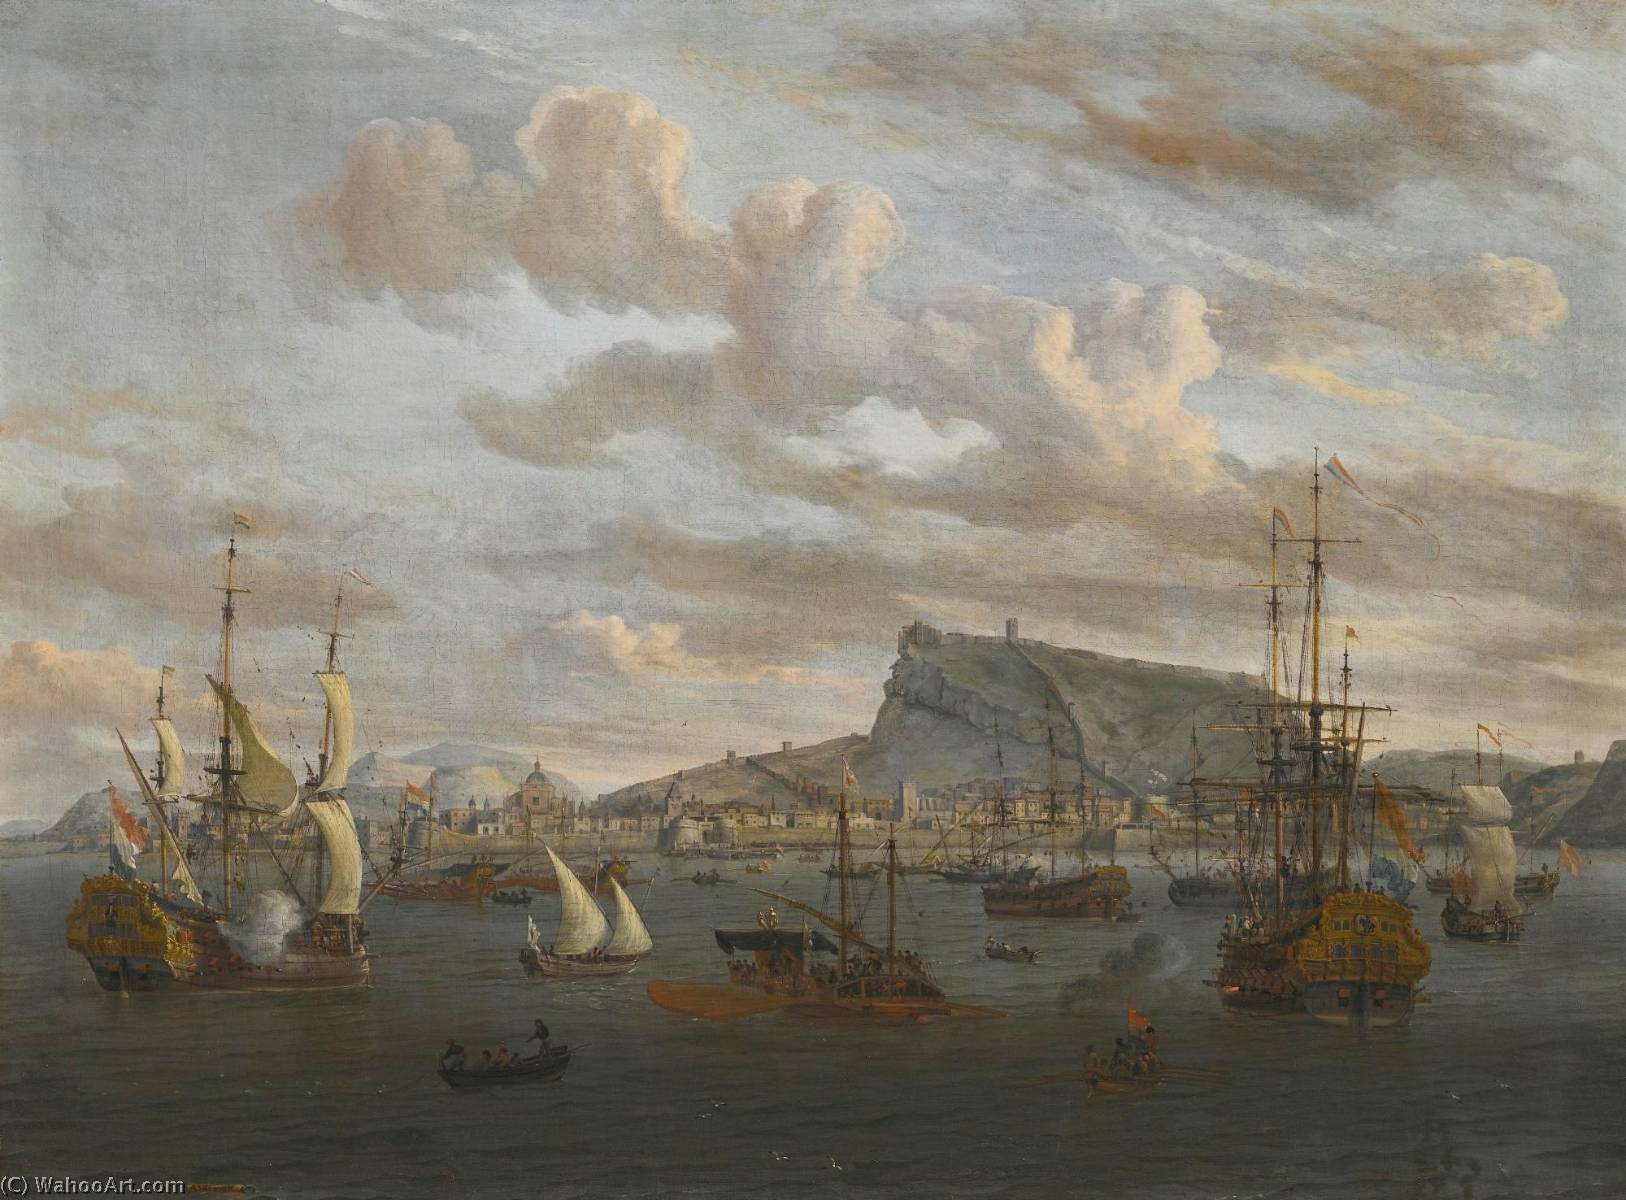 A view of Nafplion in Greece, with Dutch Indiamen, galleys and other vessels offshore, Oil On Canvas by Abraham Jansz Storck